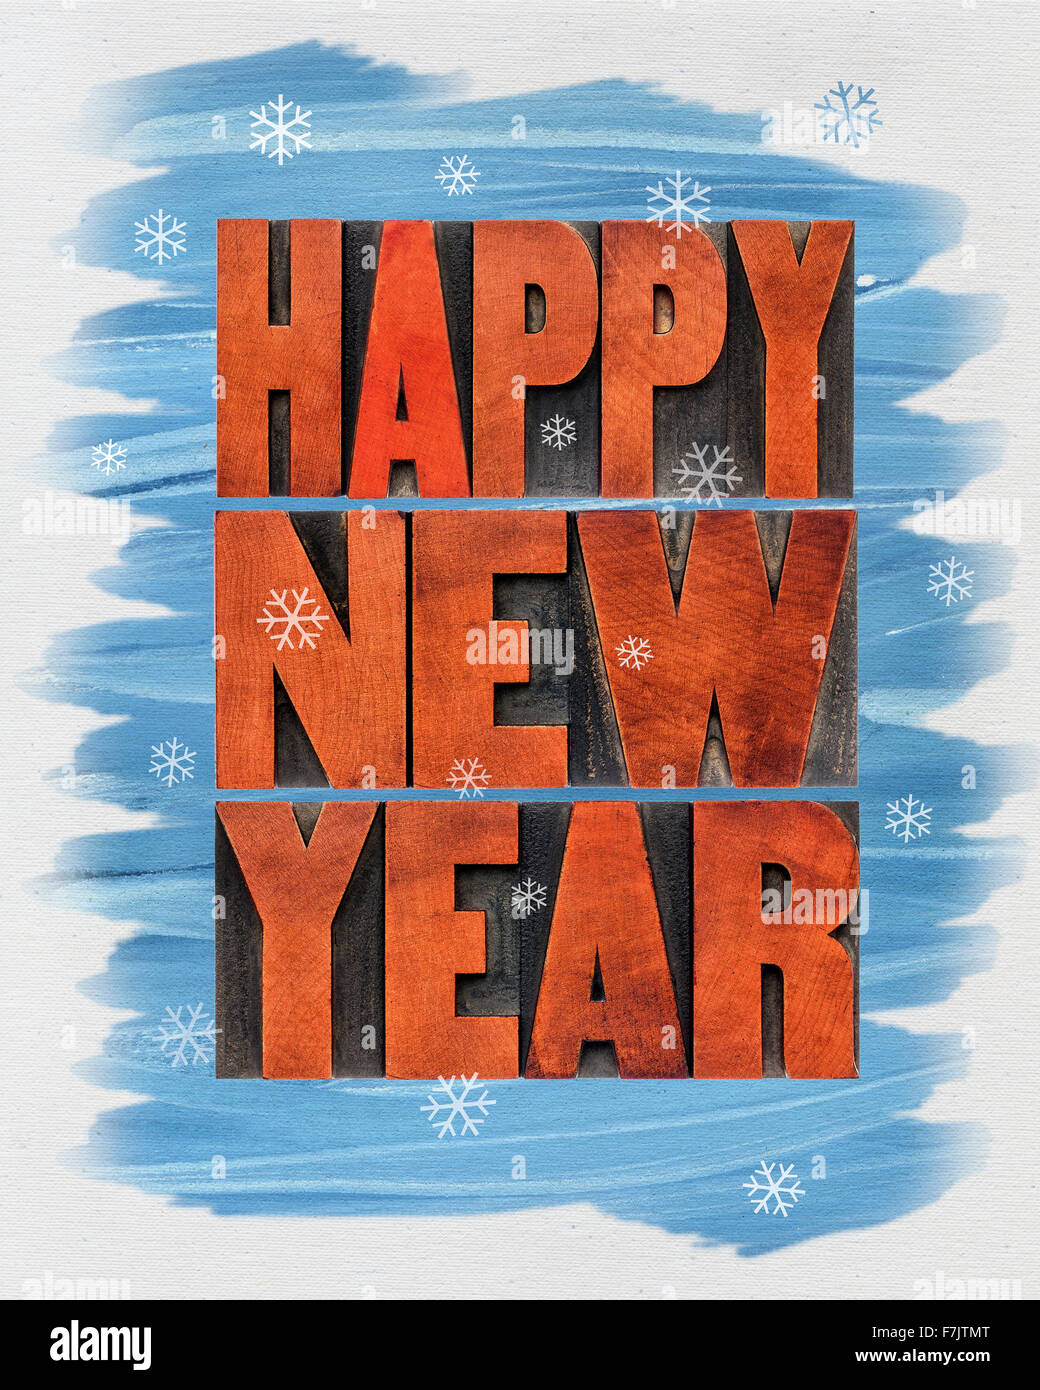 happy new year greeting card a collage of text in vintage letterpress wood type blocks and watercolor painting on canvas